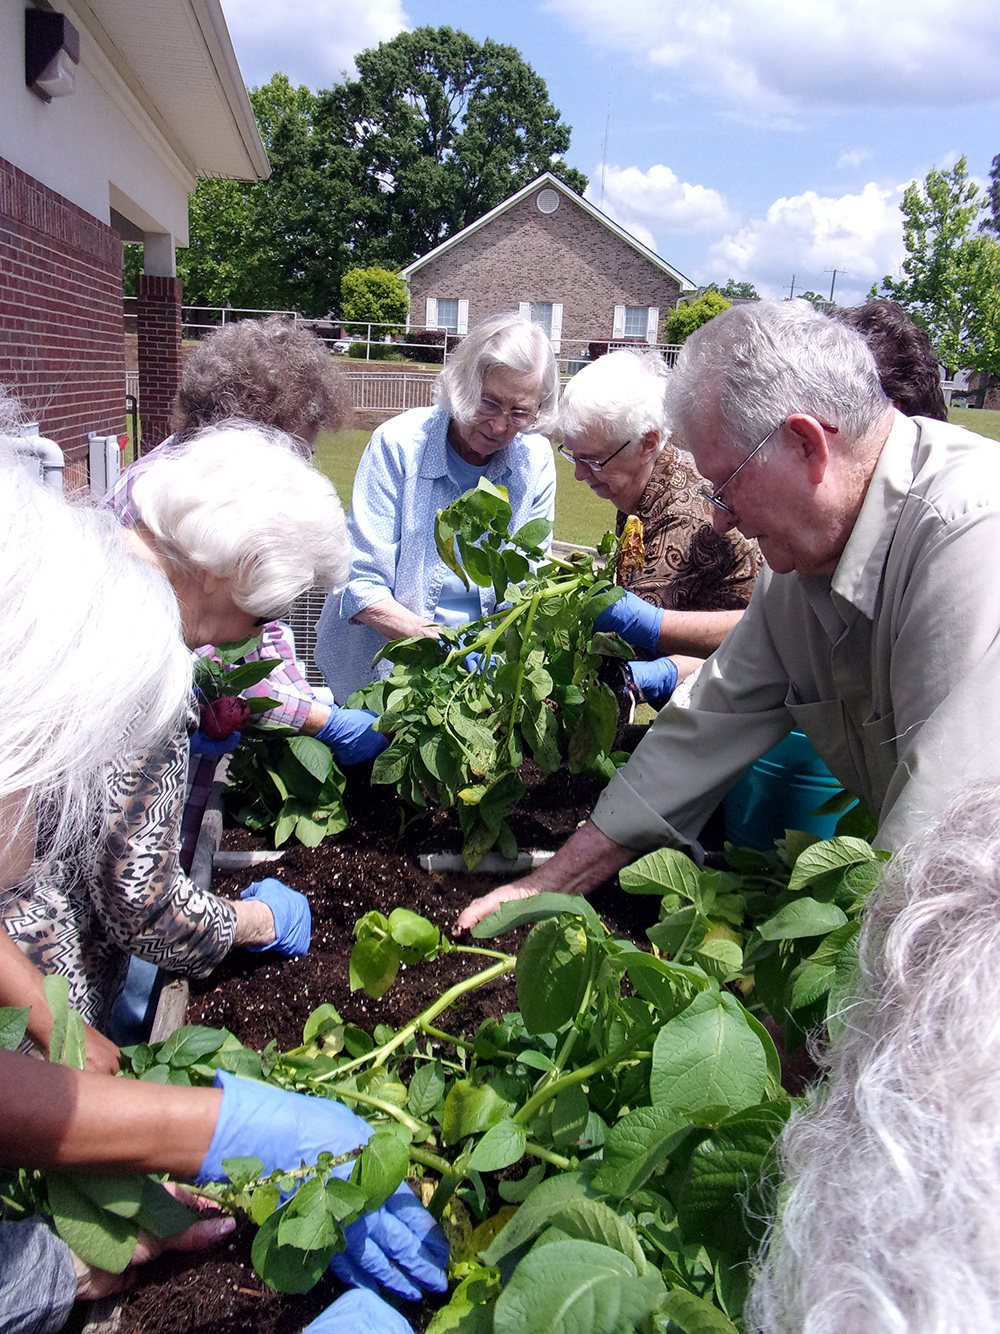 People surround a waist-high elevated gardening bed as they dig up potatoes grown in the bed.